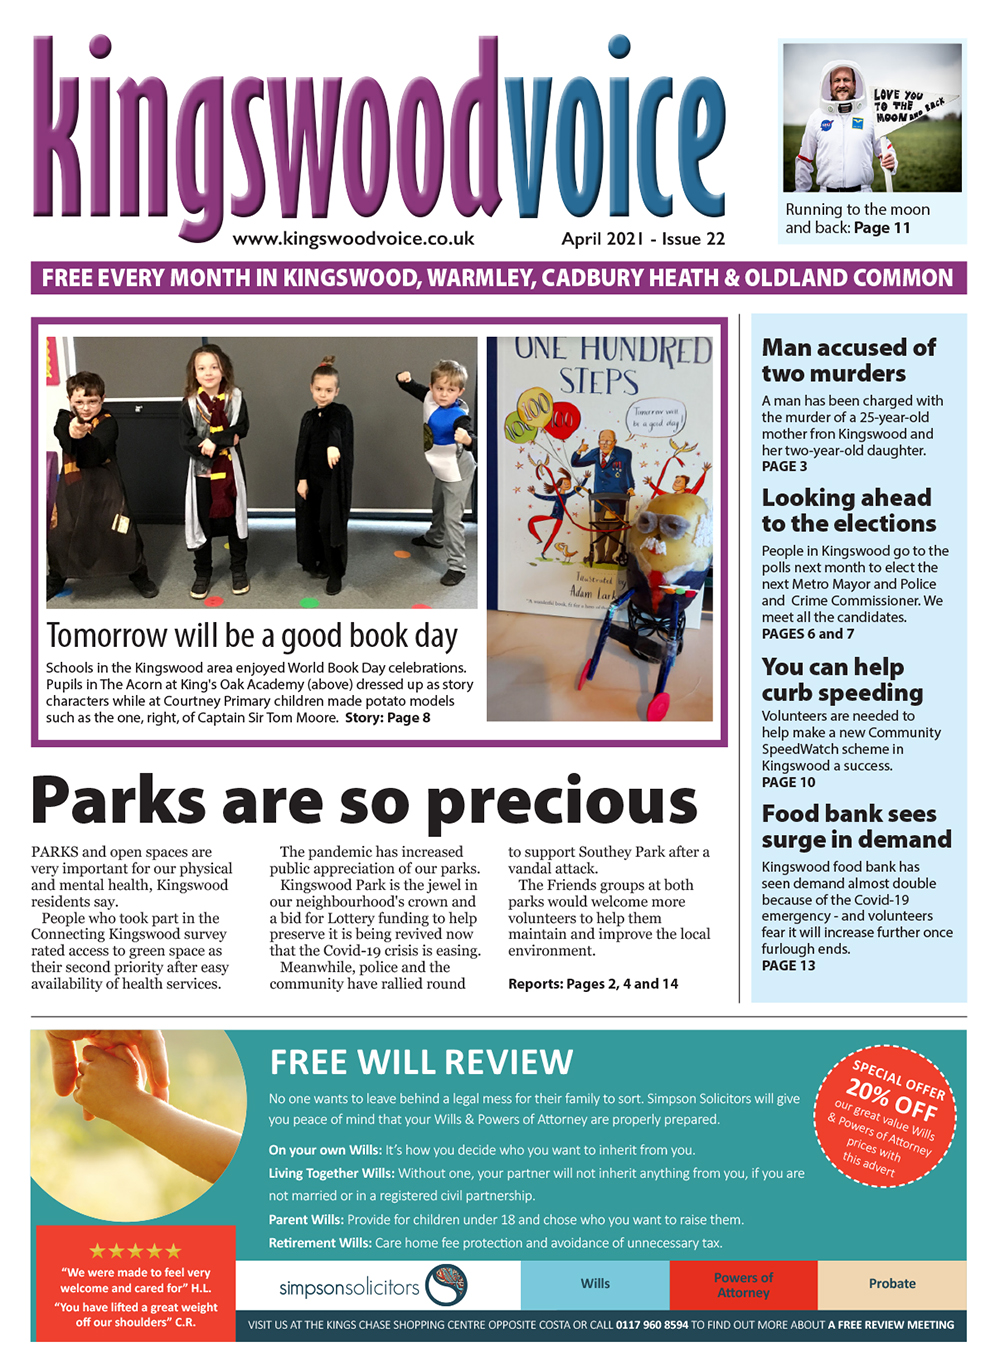 Kingswood Voice April 2021